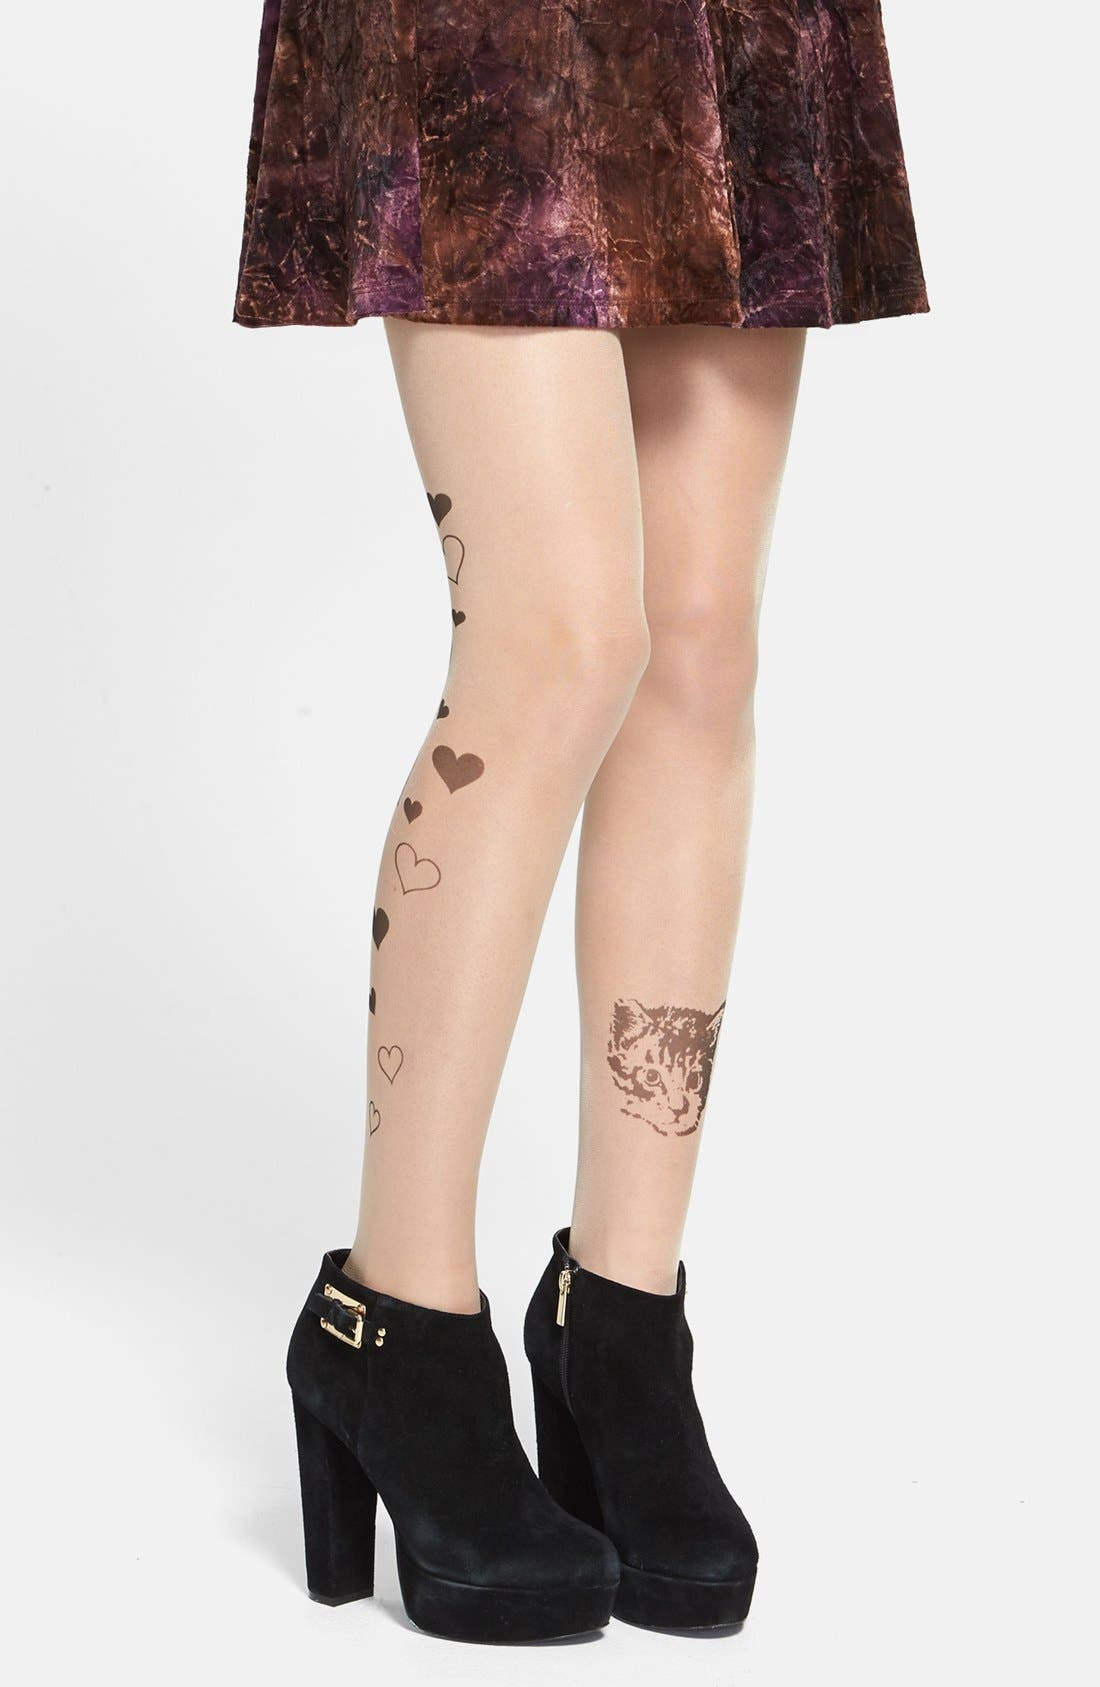 Alternate Image 1 Selected - BP. 'Kitty & Heart Tattoo' Tights (Juniors)